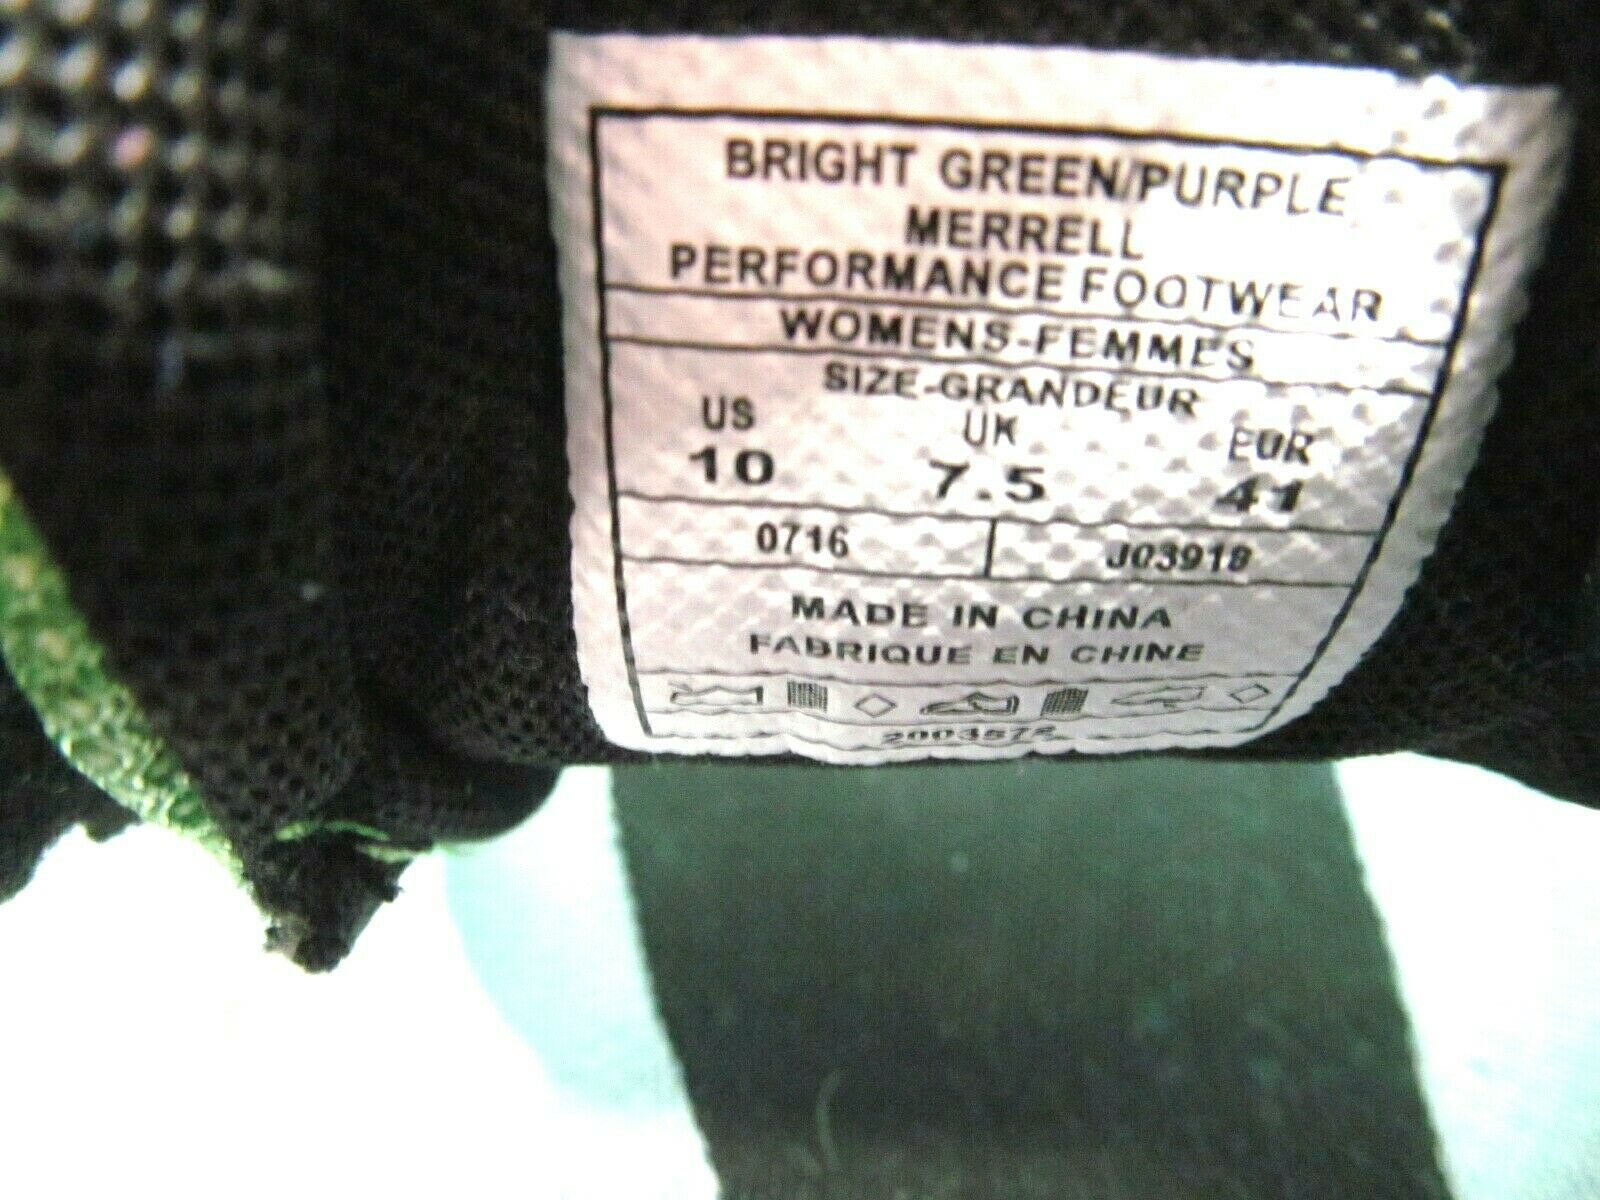 Merrell M Connect Womens Vapor Glove 2 Shoes Bright Green And Purple Size US 10 image 9